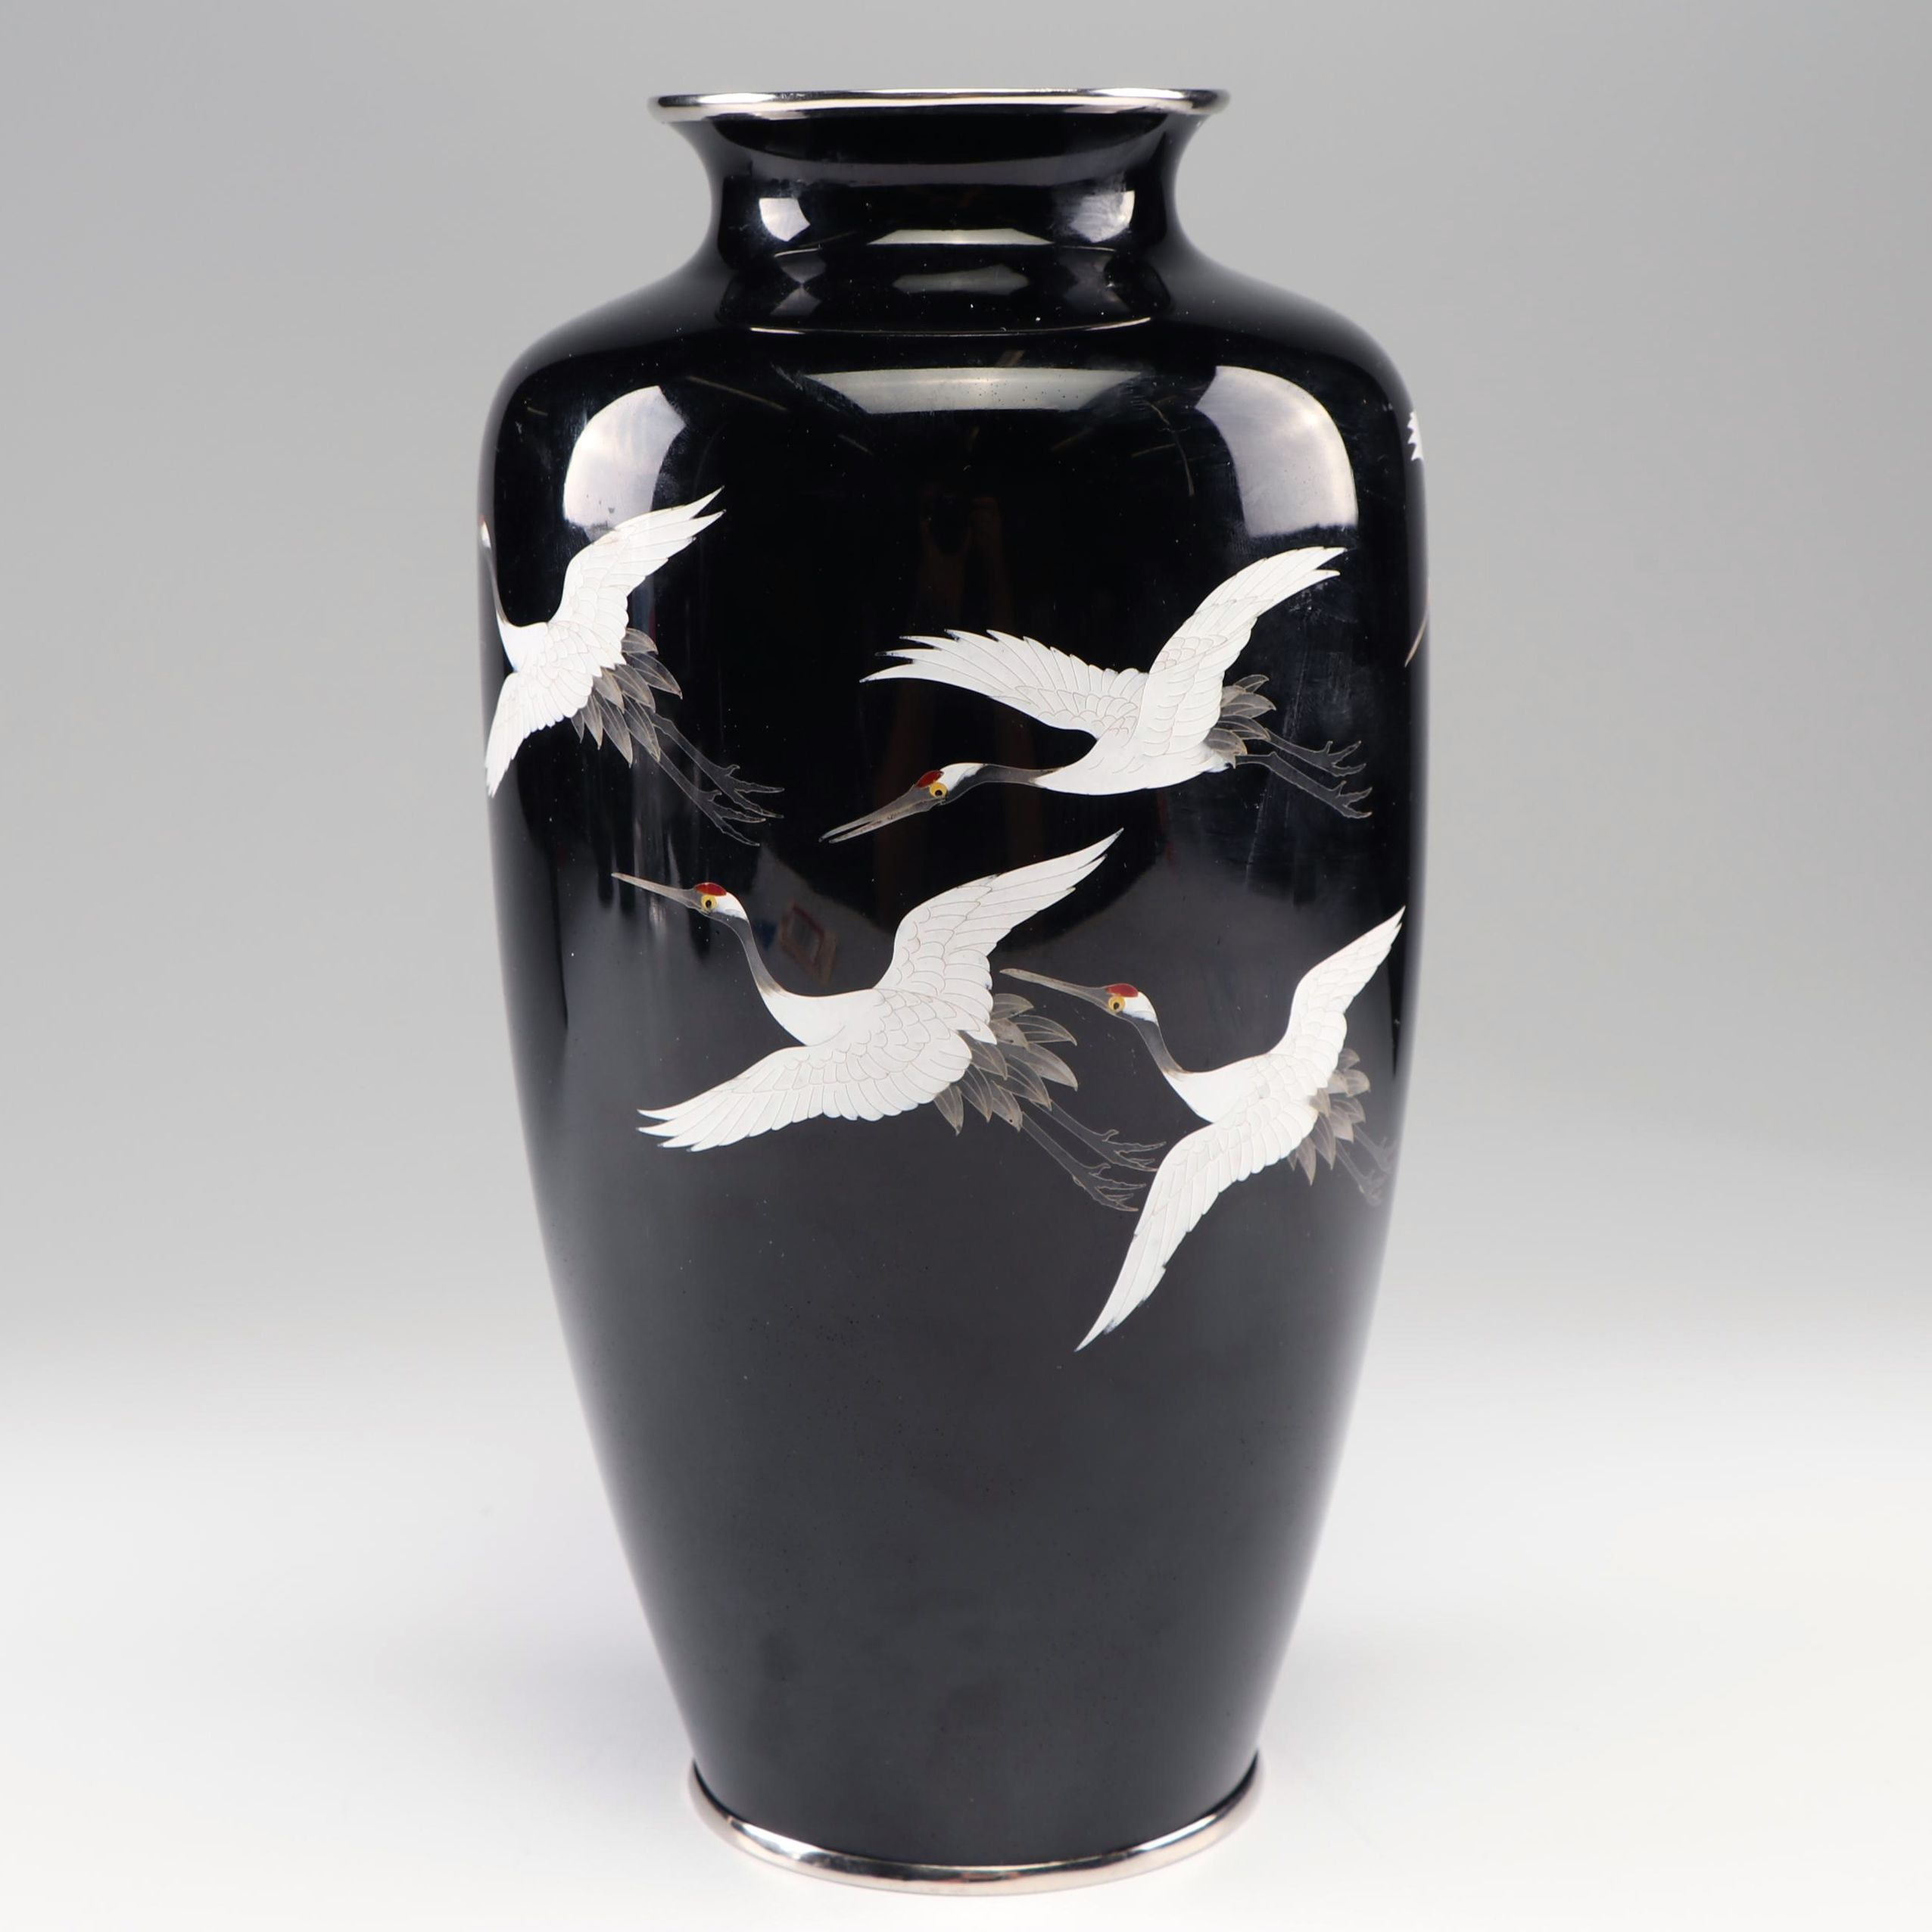 Japanese Cloisonné Vase with Flying Cranes